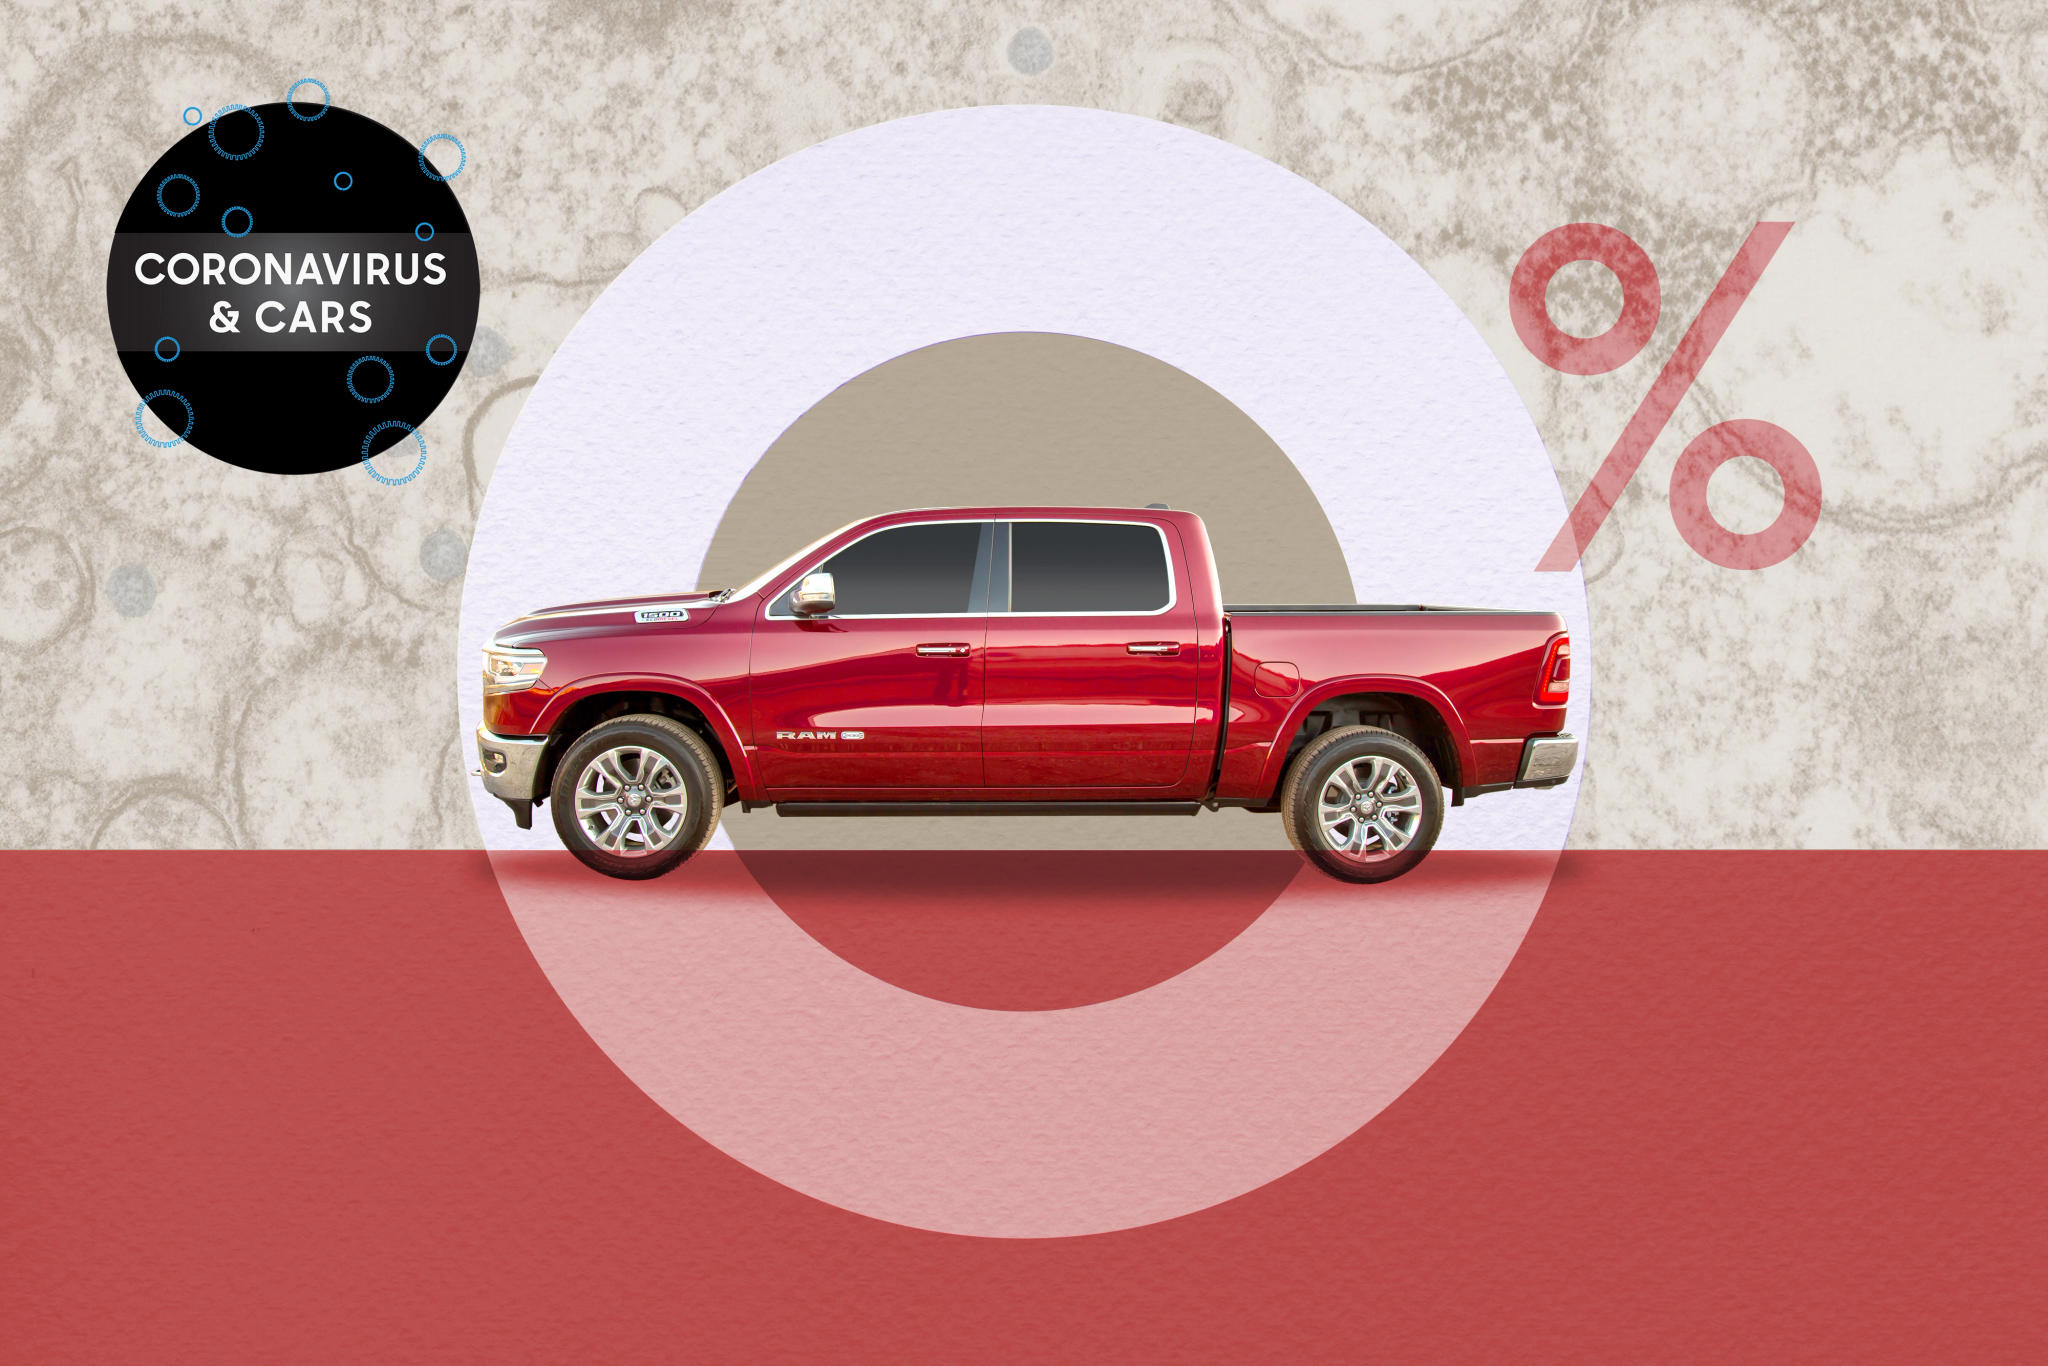 Coronavirus Car Deals: 3 Chrysler, Ram Models With 0% Financing and Why You Should Consider Them